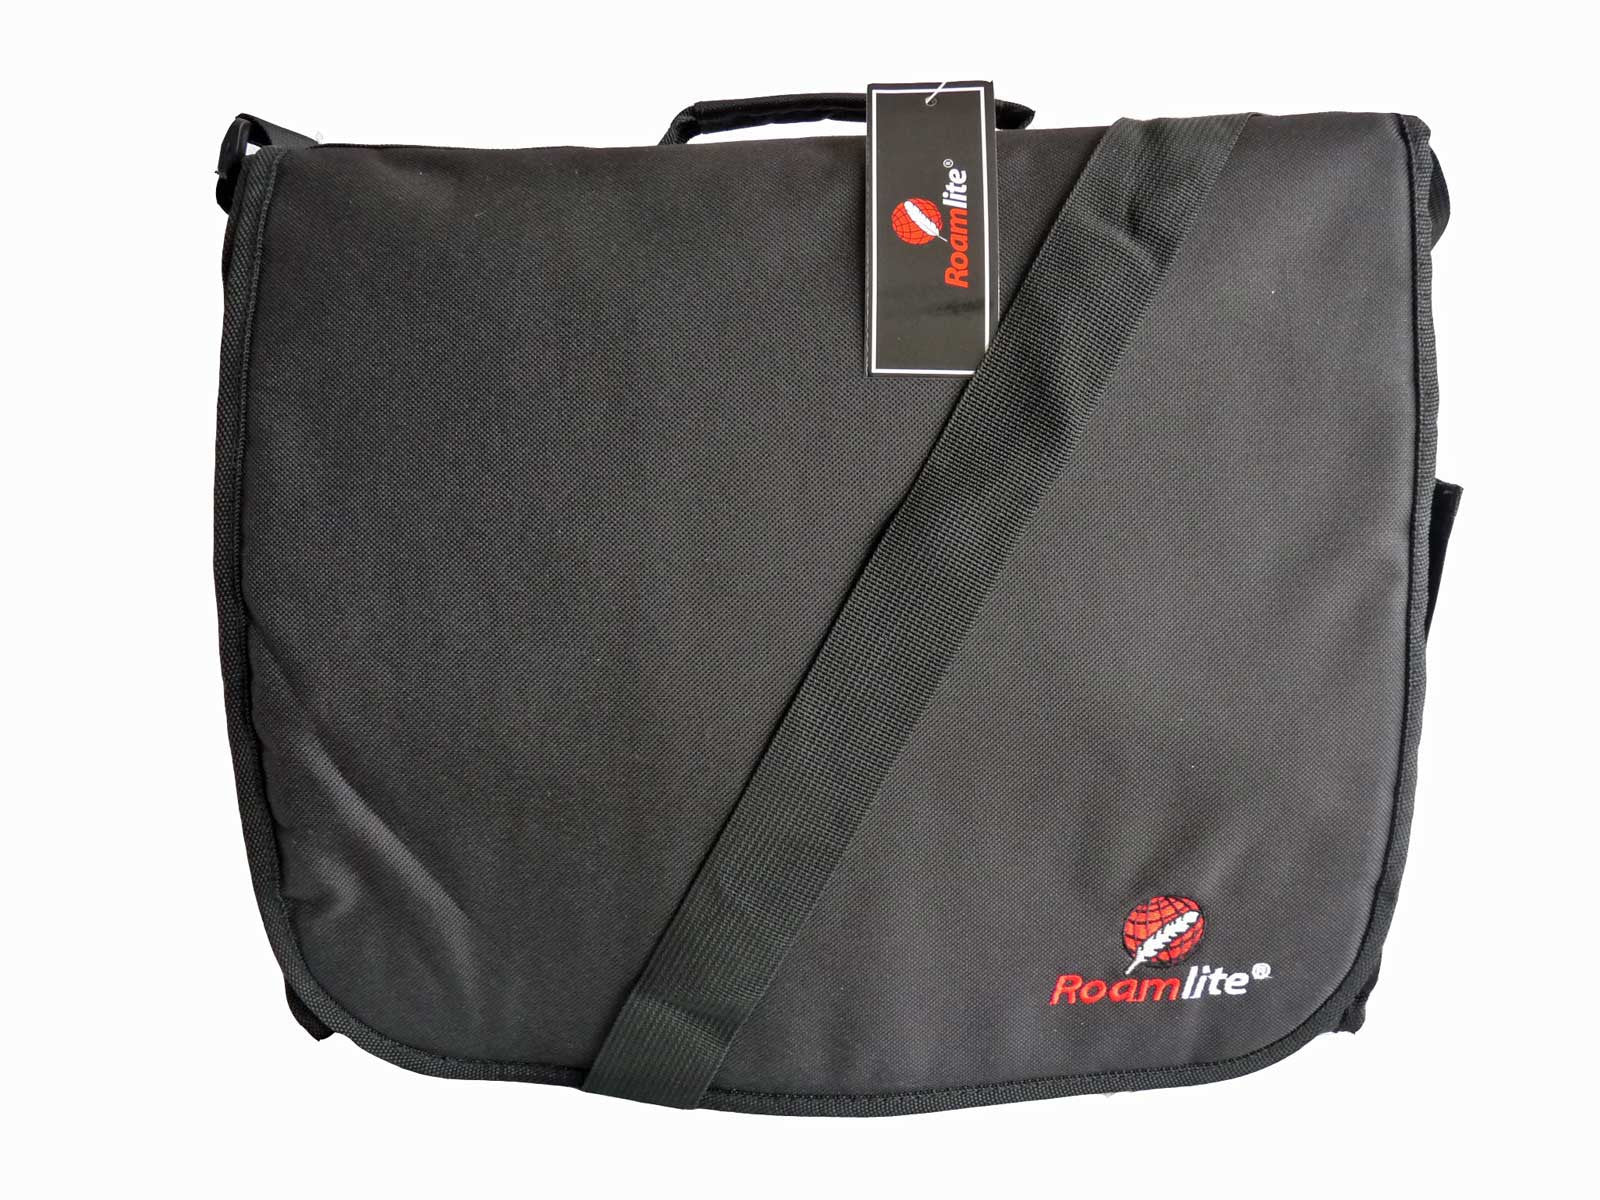 Dispatch Record Bag RL38Kf Front View